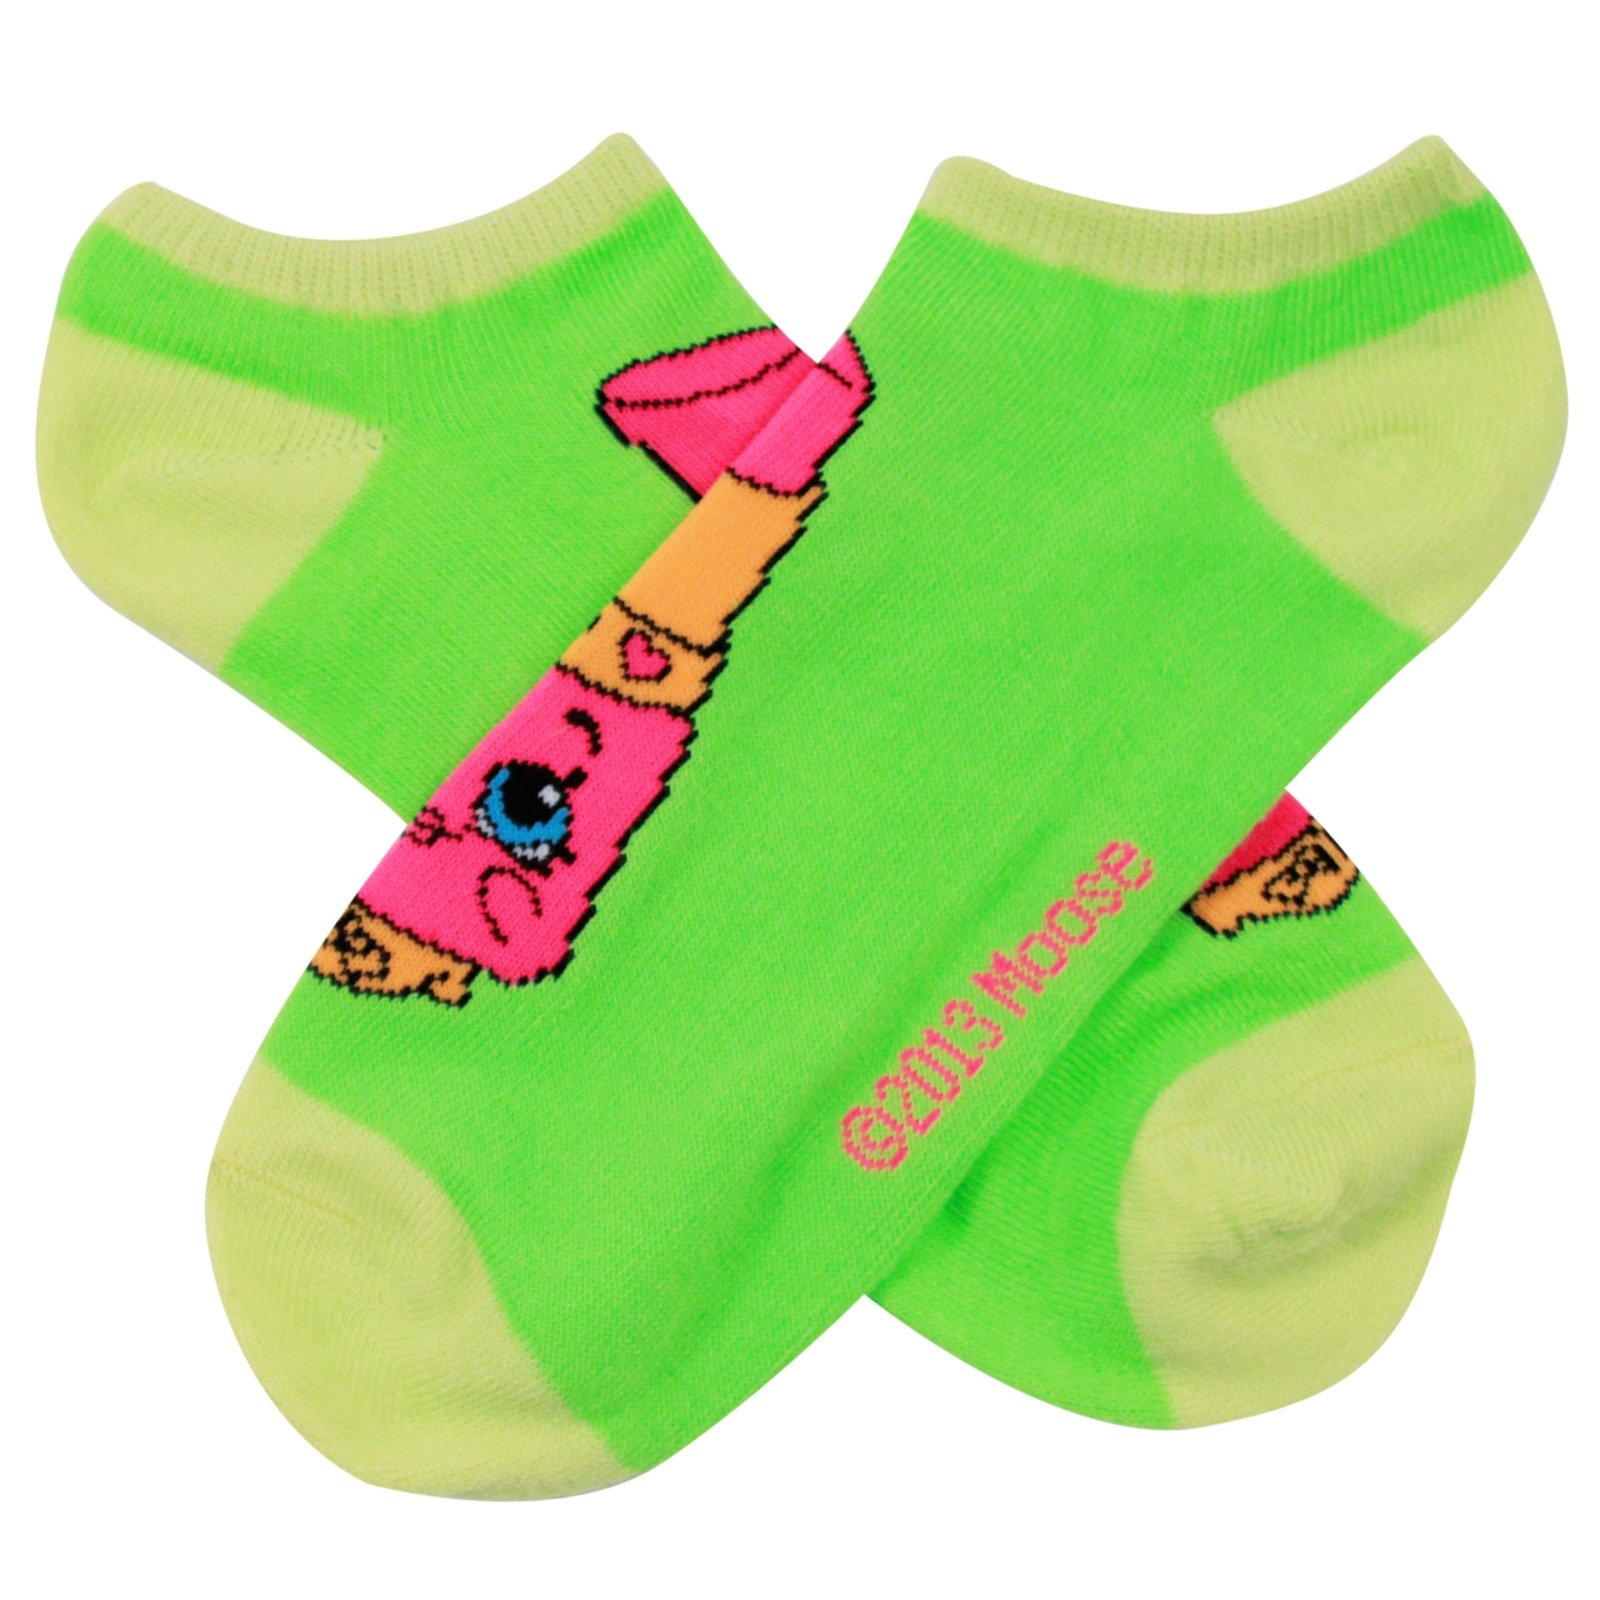 Shopkins Girls Ankle Socks Sizes 9 -11 - 1 Pair Assorted Colors